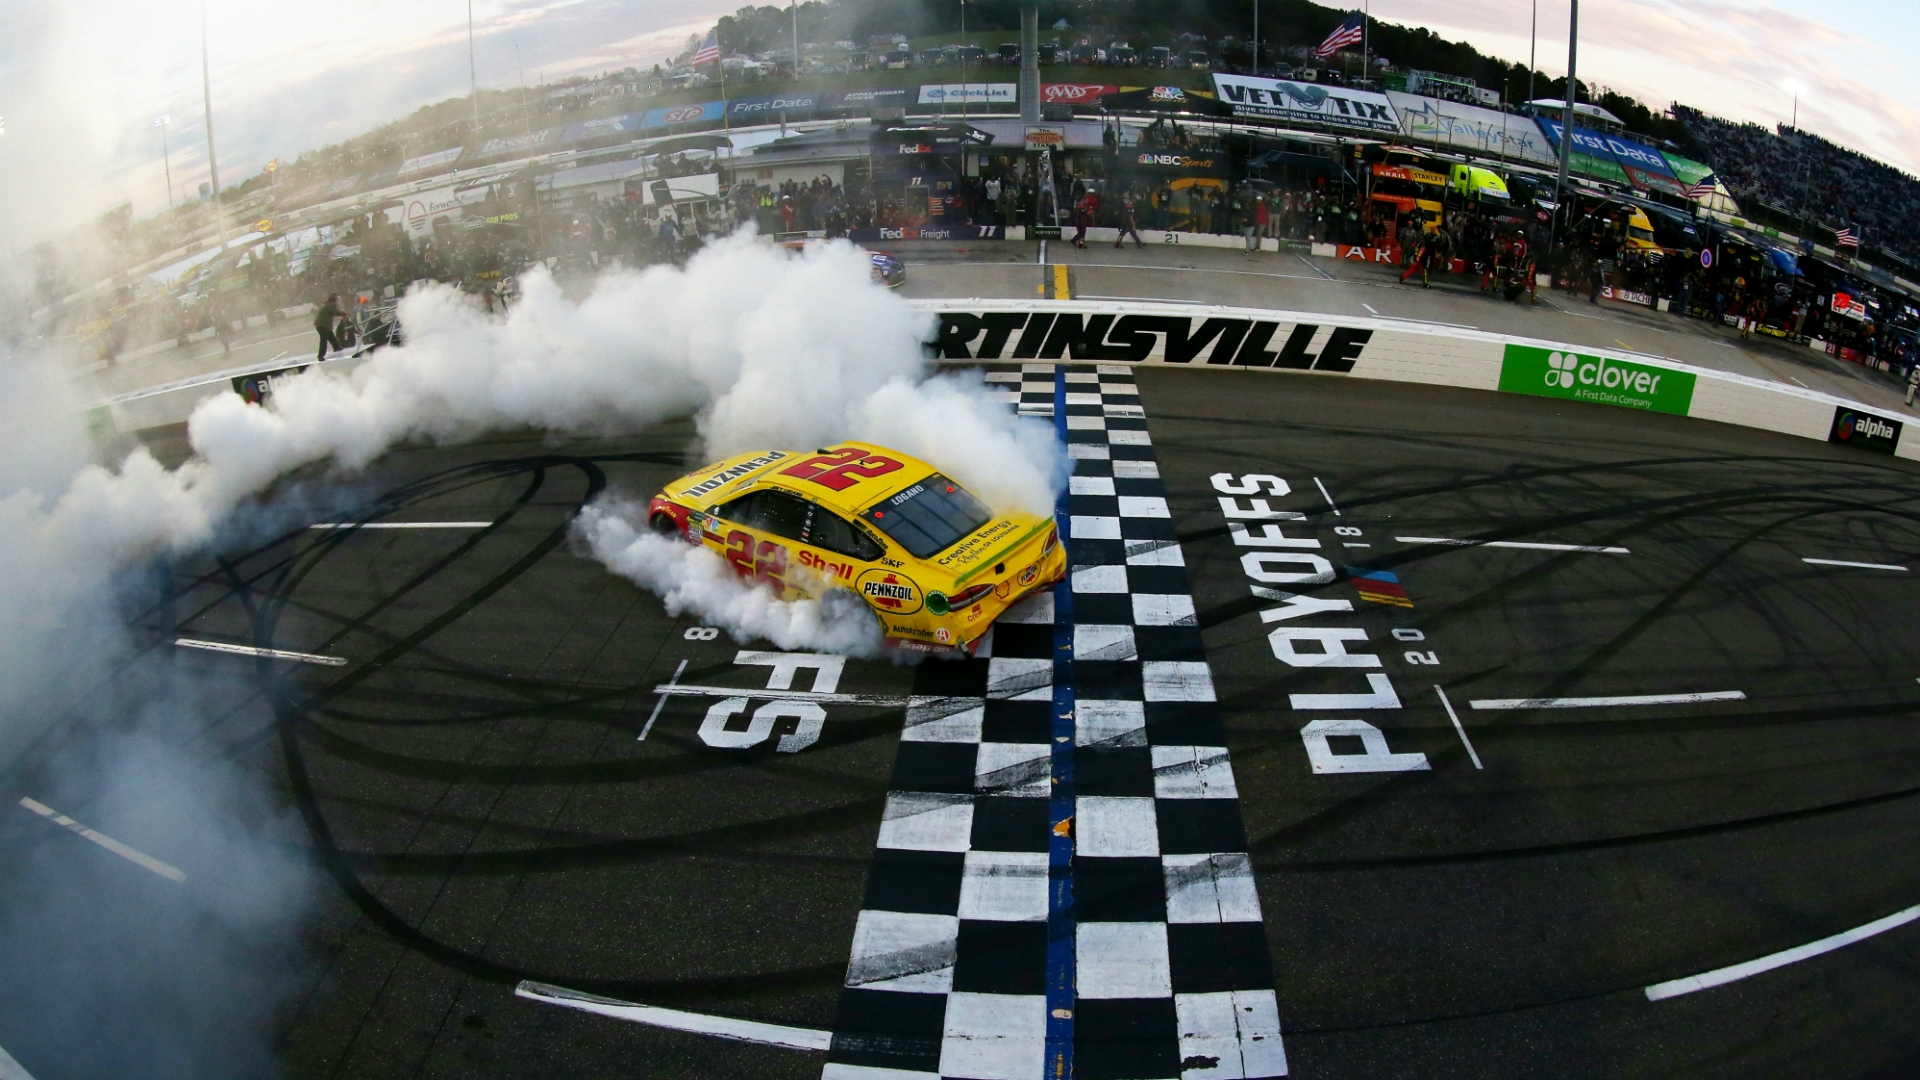 image relating to Nascar Printable Schedule identify NASCAR Monster Electrical energy Sequence start off moments uncovered Putting on